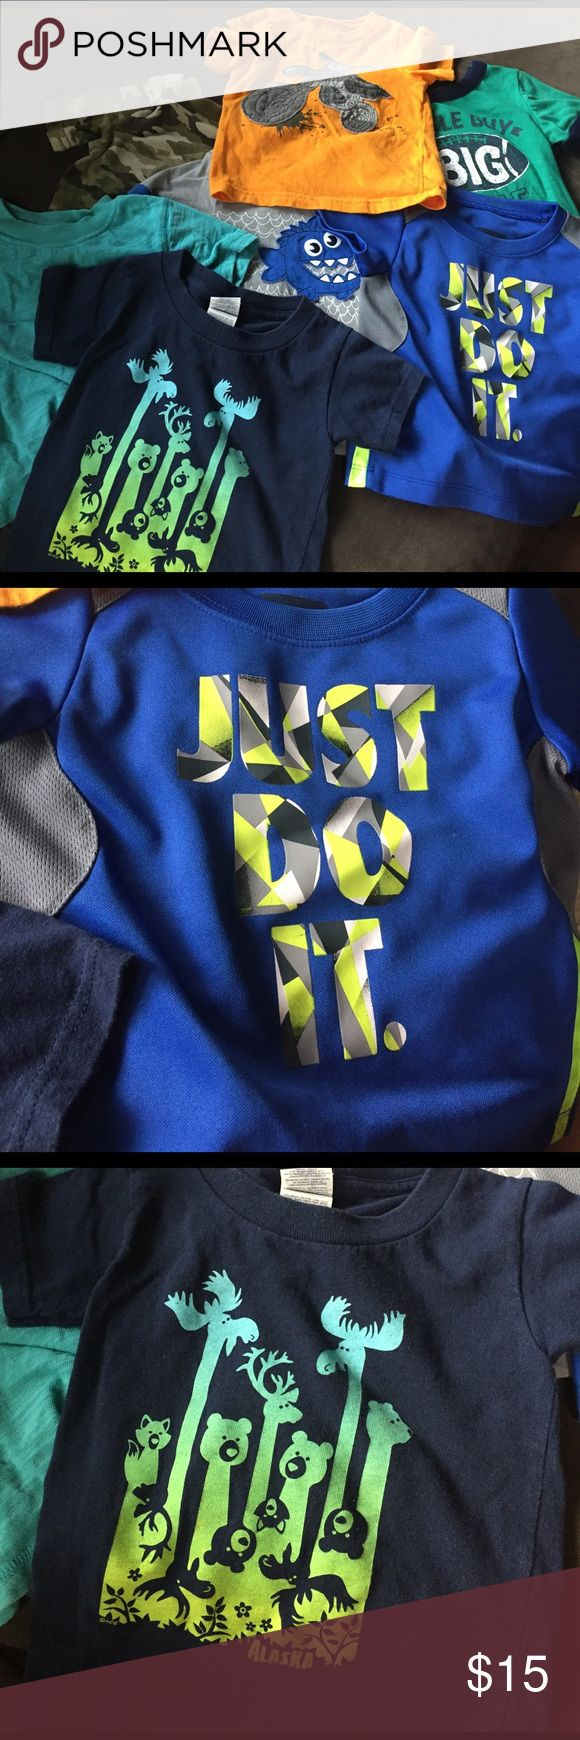 7 toddler Boy t-shirts (12 months) 7 toddler Boy t-shirts (12 months) the light teal shirt is 6-12 months and the navy blue shirt from Alaska is 2T but all the same size. Great condition. No stains. Shirts & Tops Tees - Short Sleeve